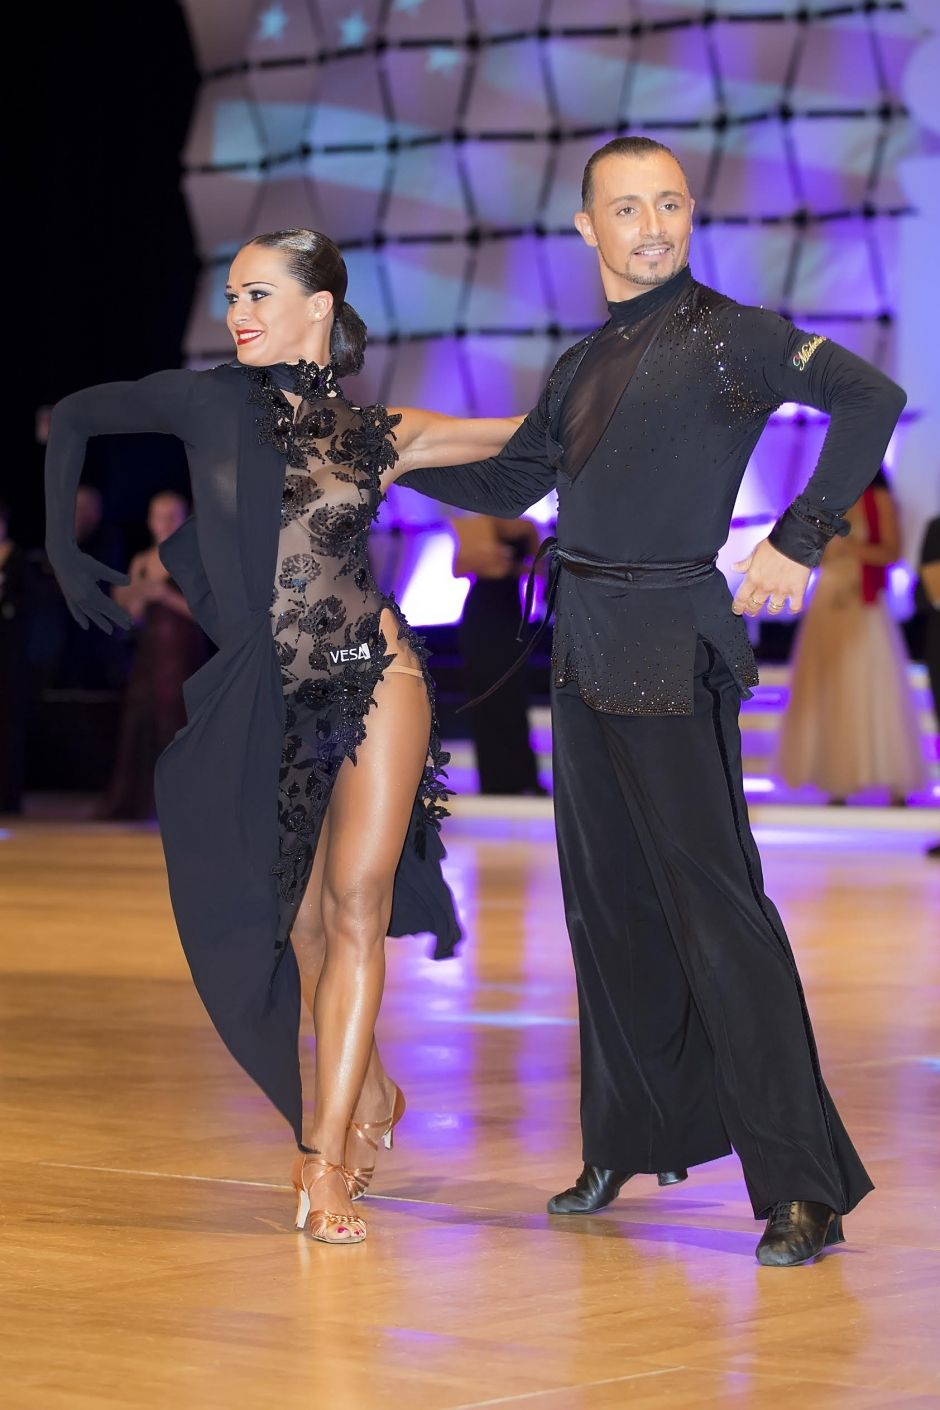 Maurizio and Andra – the best couple | Practice wear | Pinterest ...